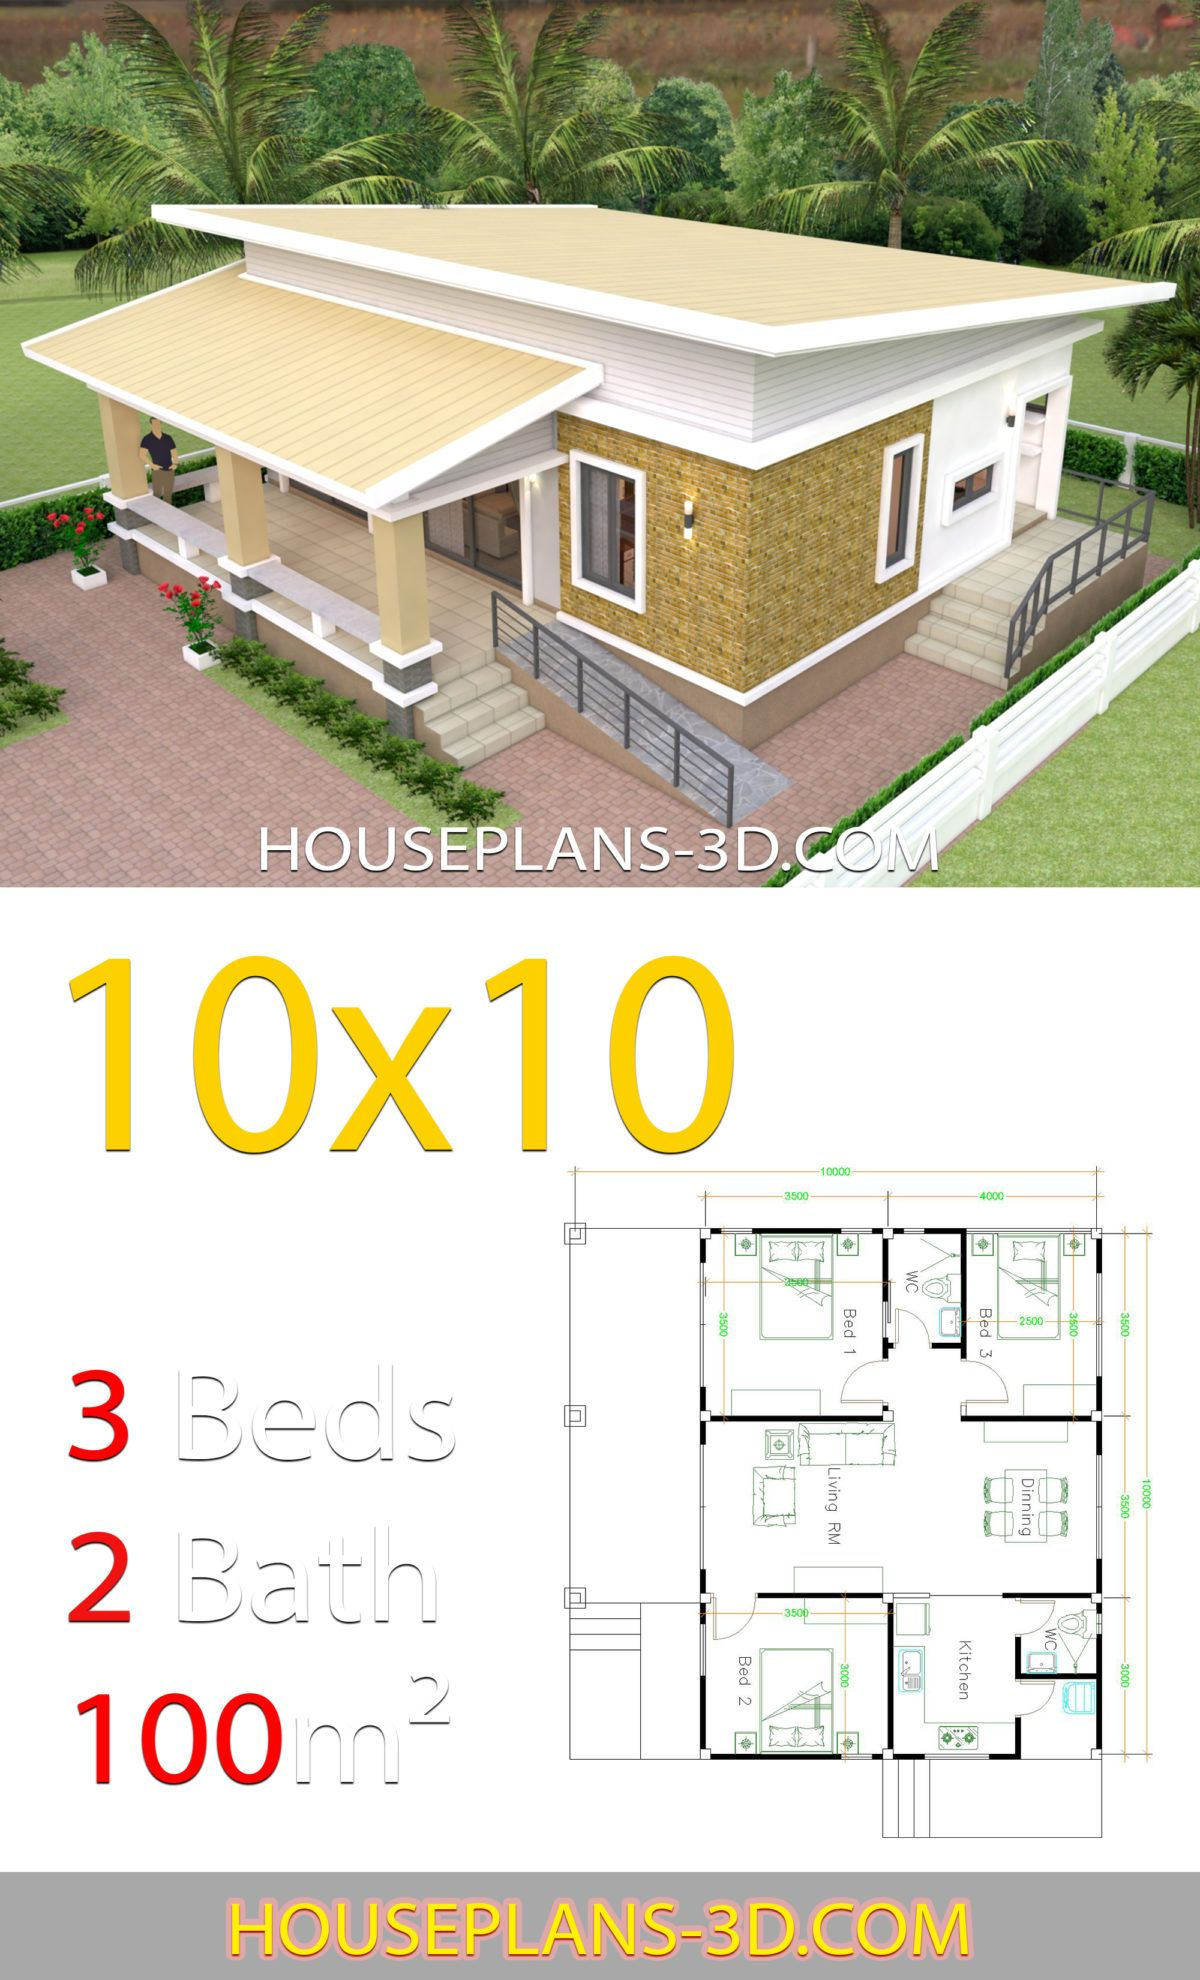 House Design Plans 10x10 With 3 Bedrooms Full Interior House Plans 3d House Plan Gallery Small House Design Plans House Layouts